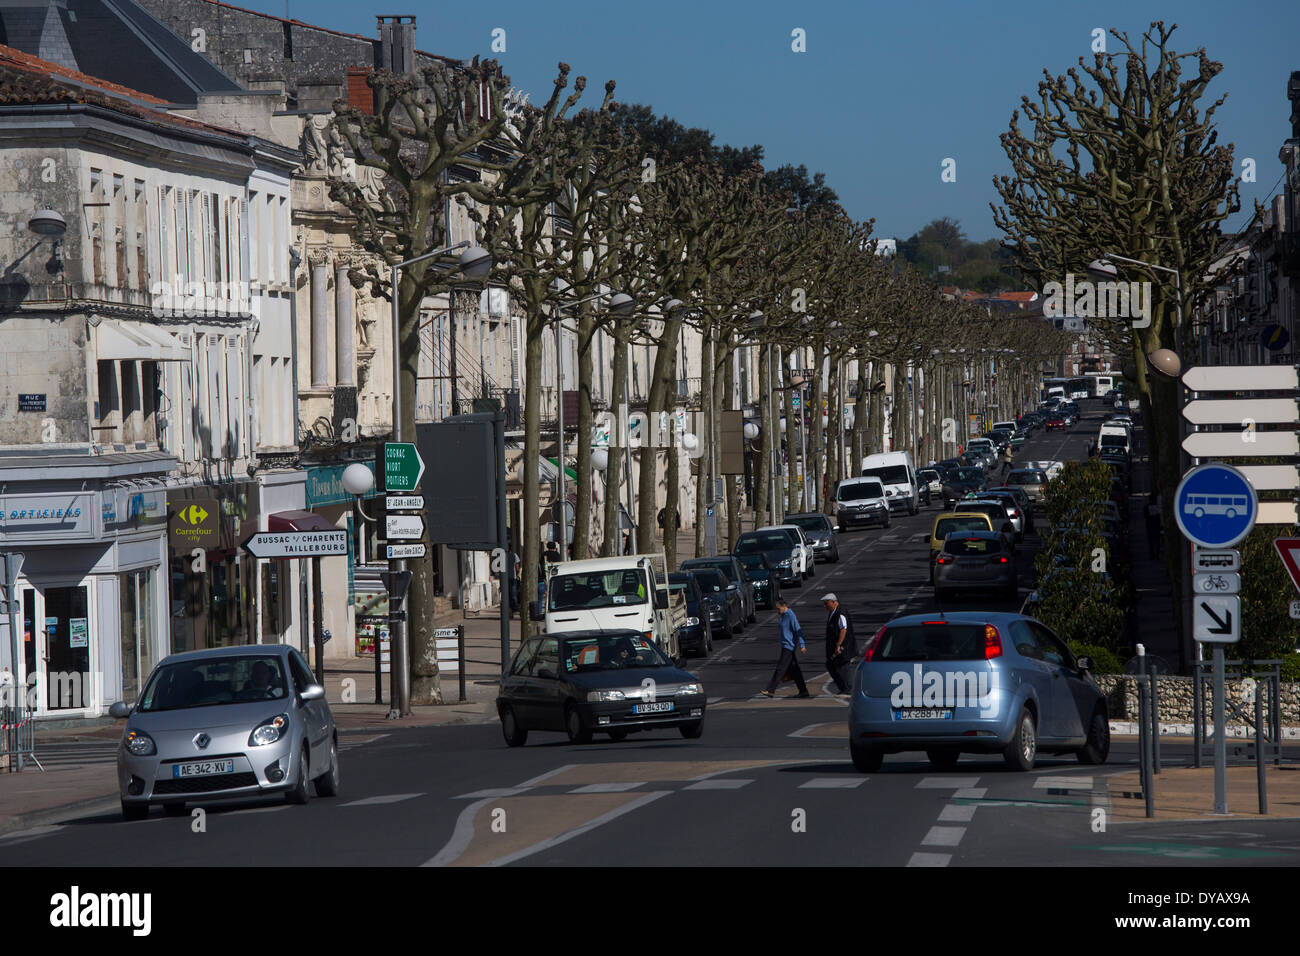 Main street lined with trees in medium sized town - Stock Image